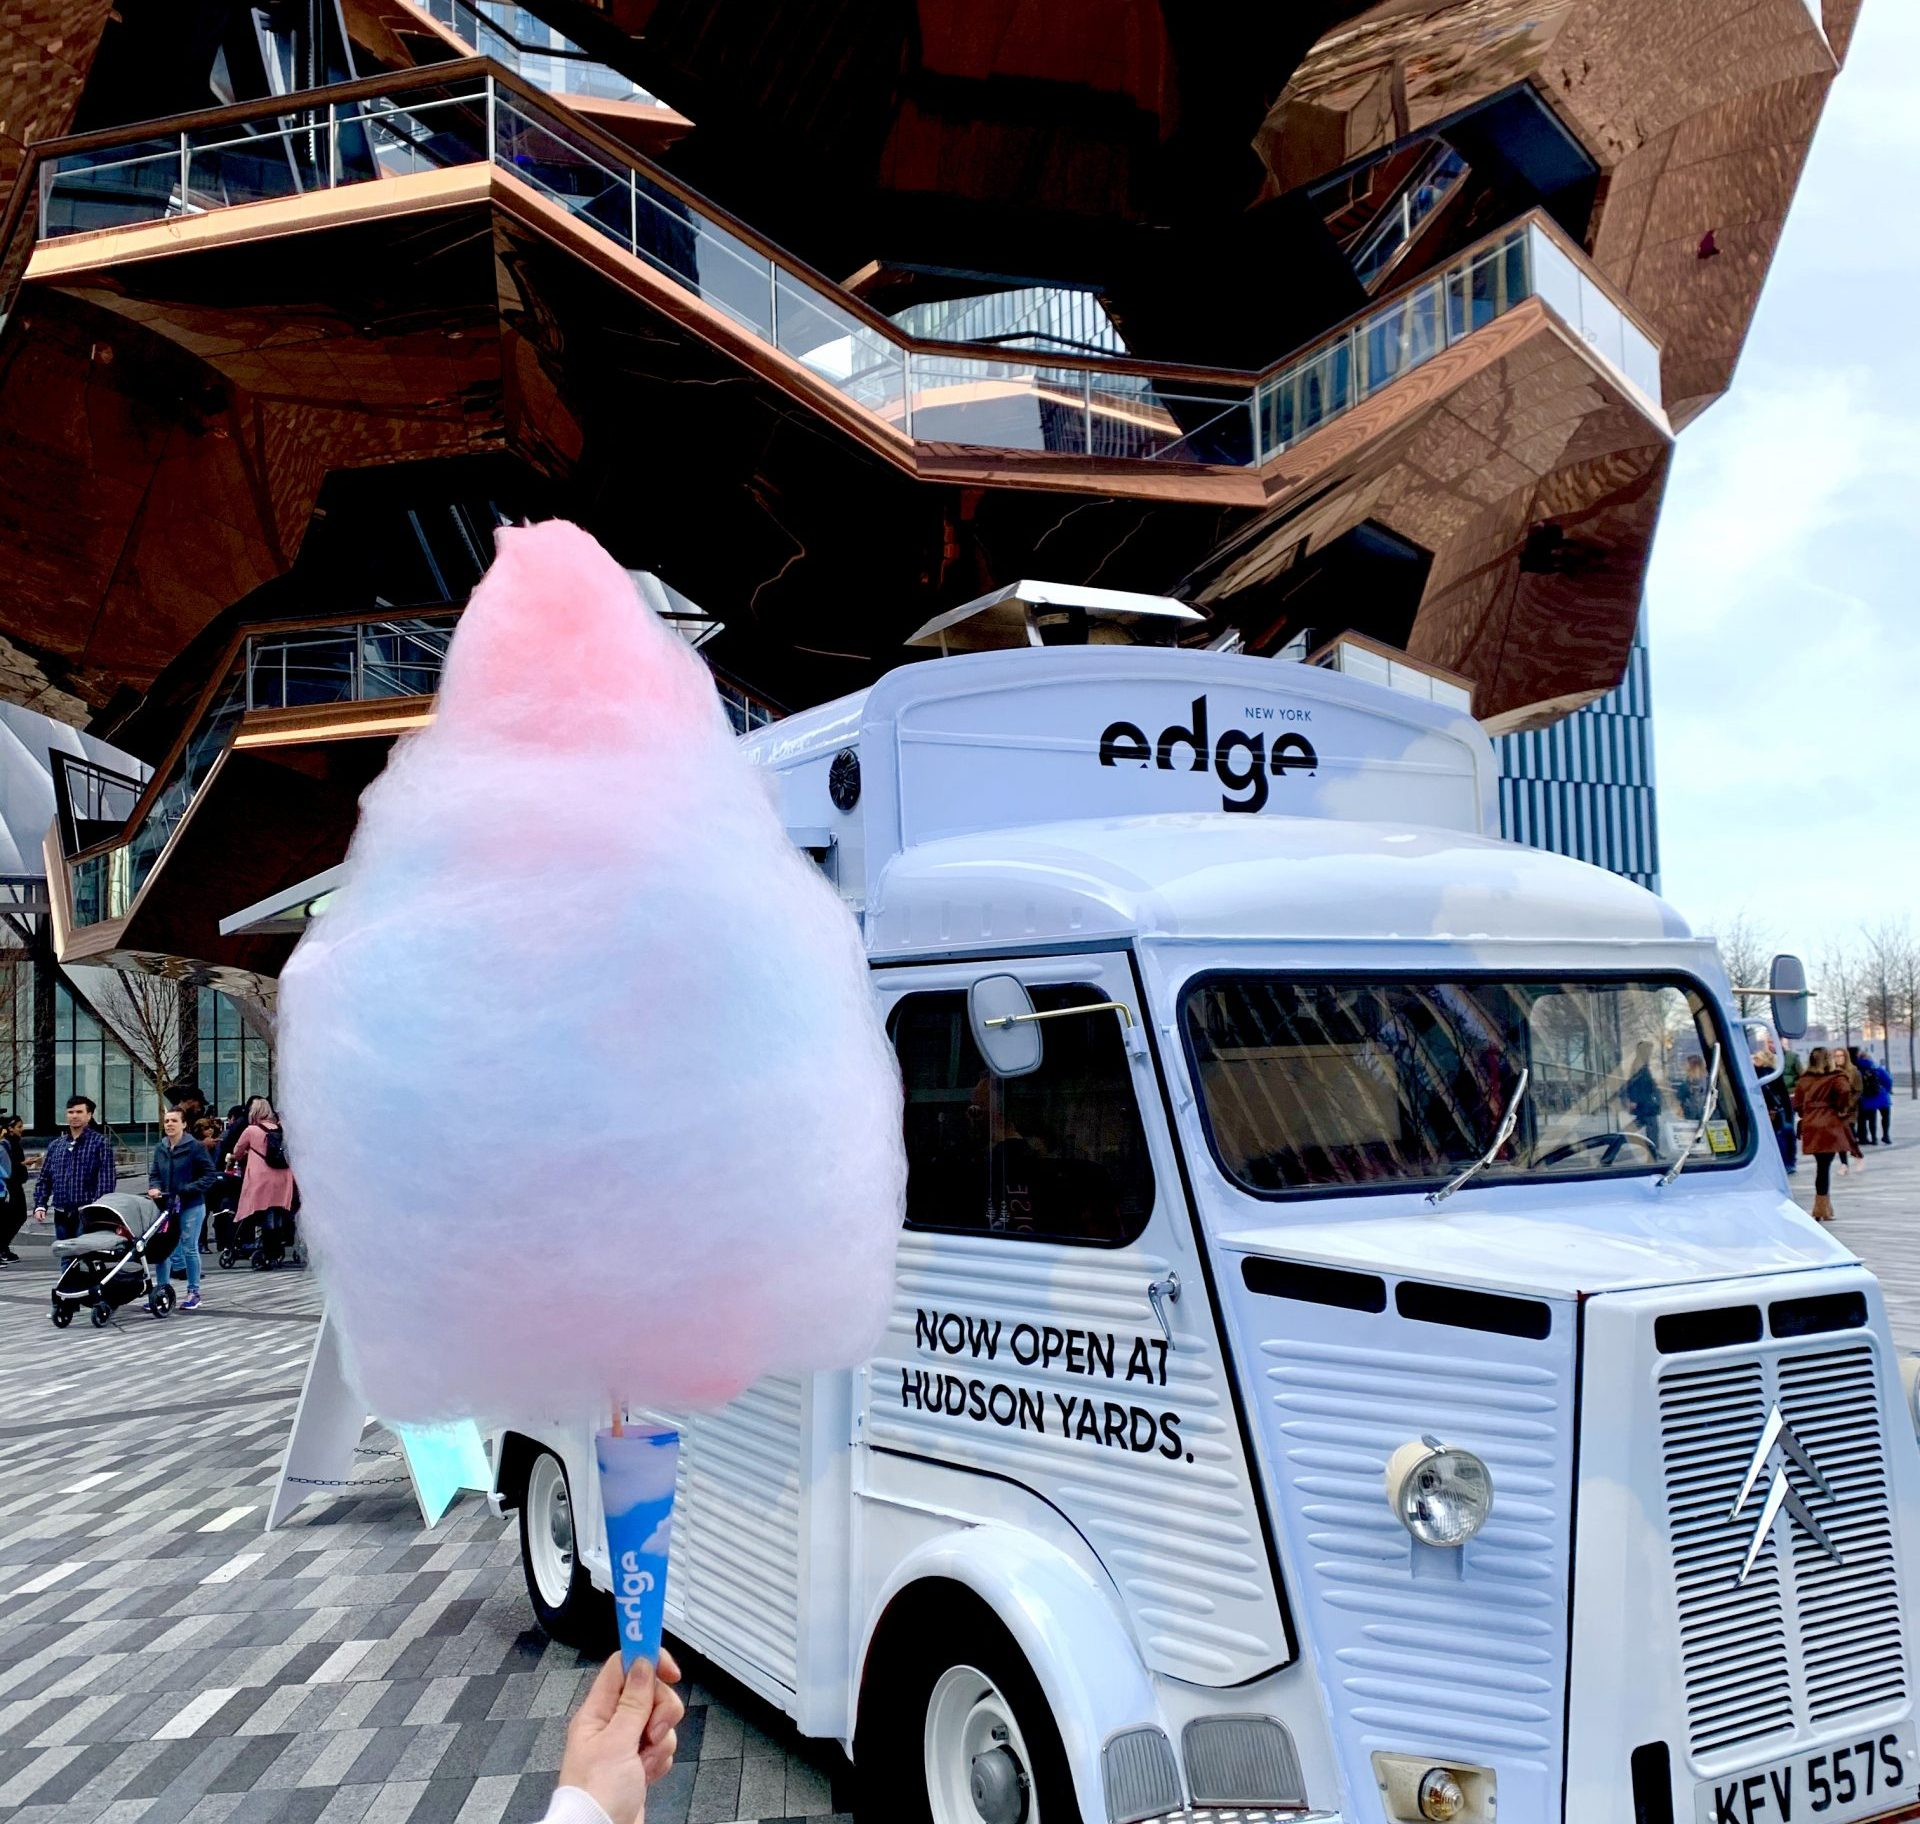 Edge Cotton Candy Custom Food Marketing Example